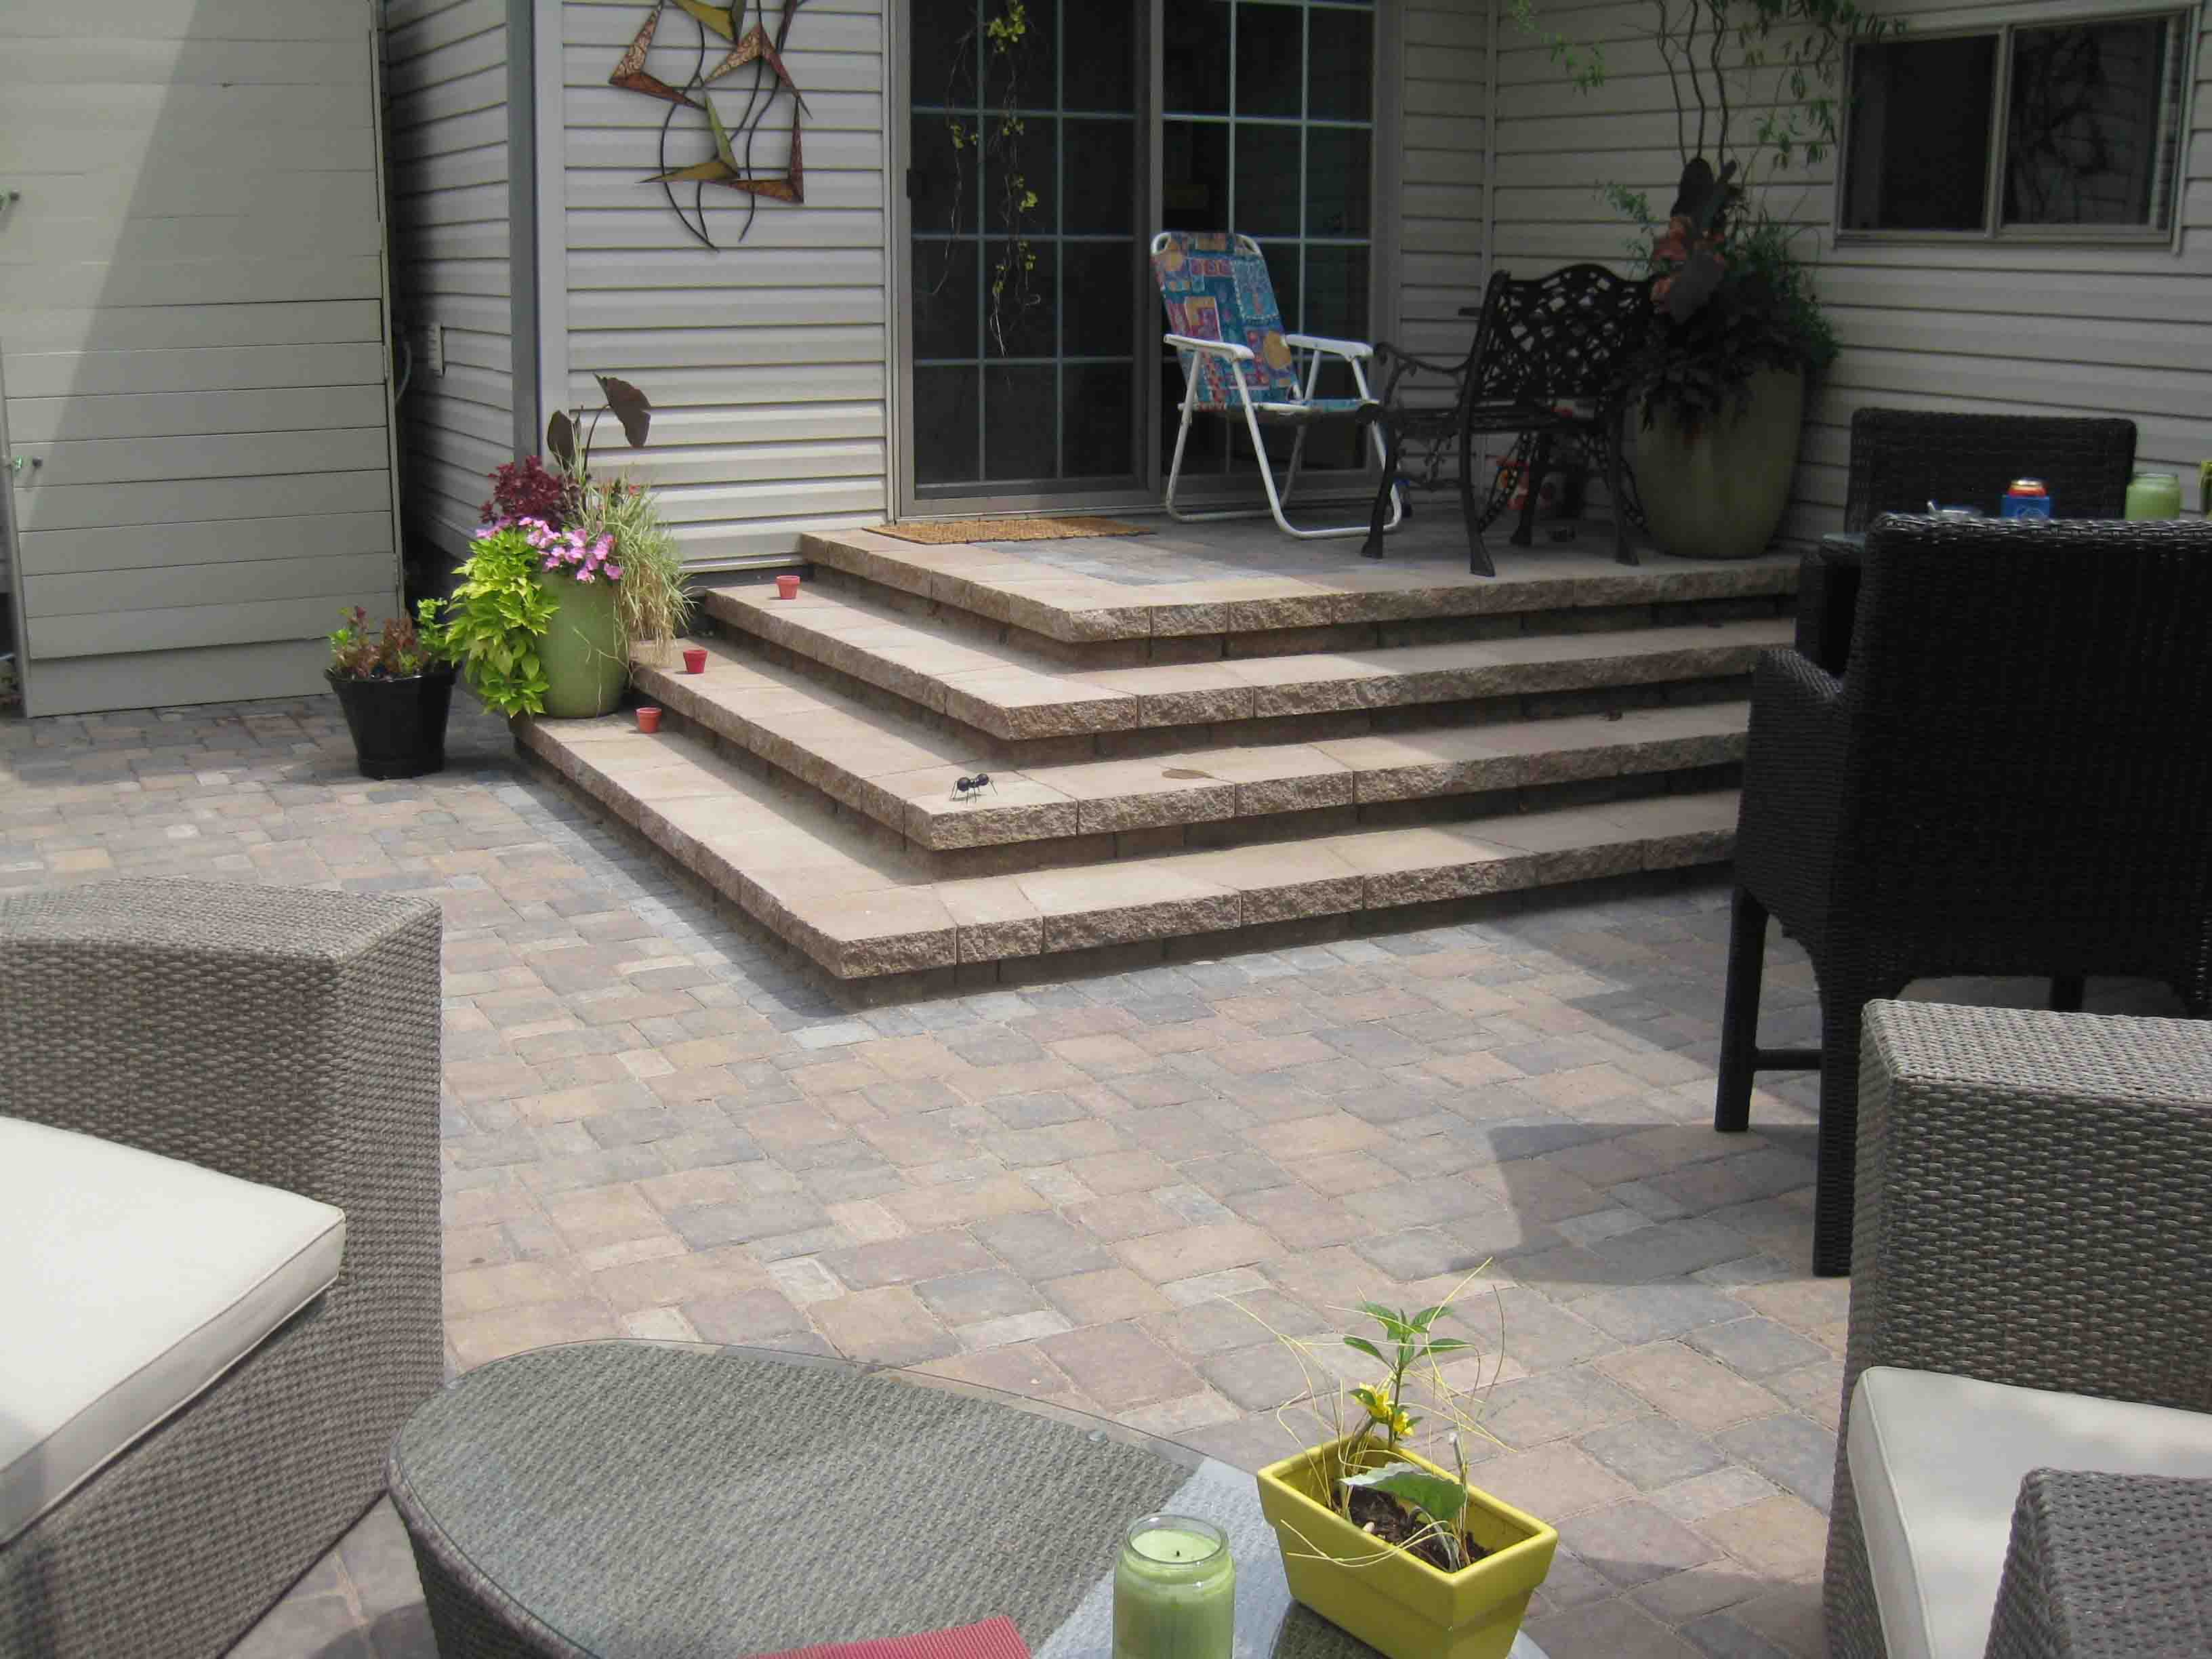 pavers ideas for combination landscaping pin from made aggregate concrete backyard are of design patio and a decorative rocks